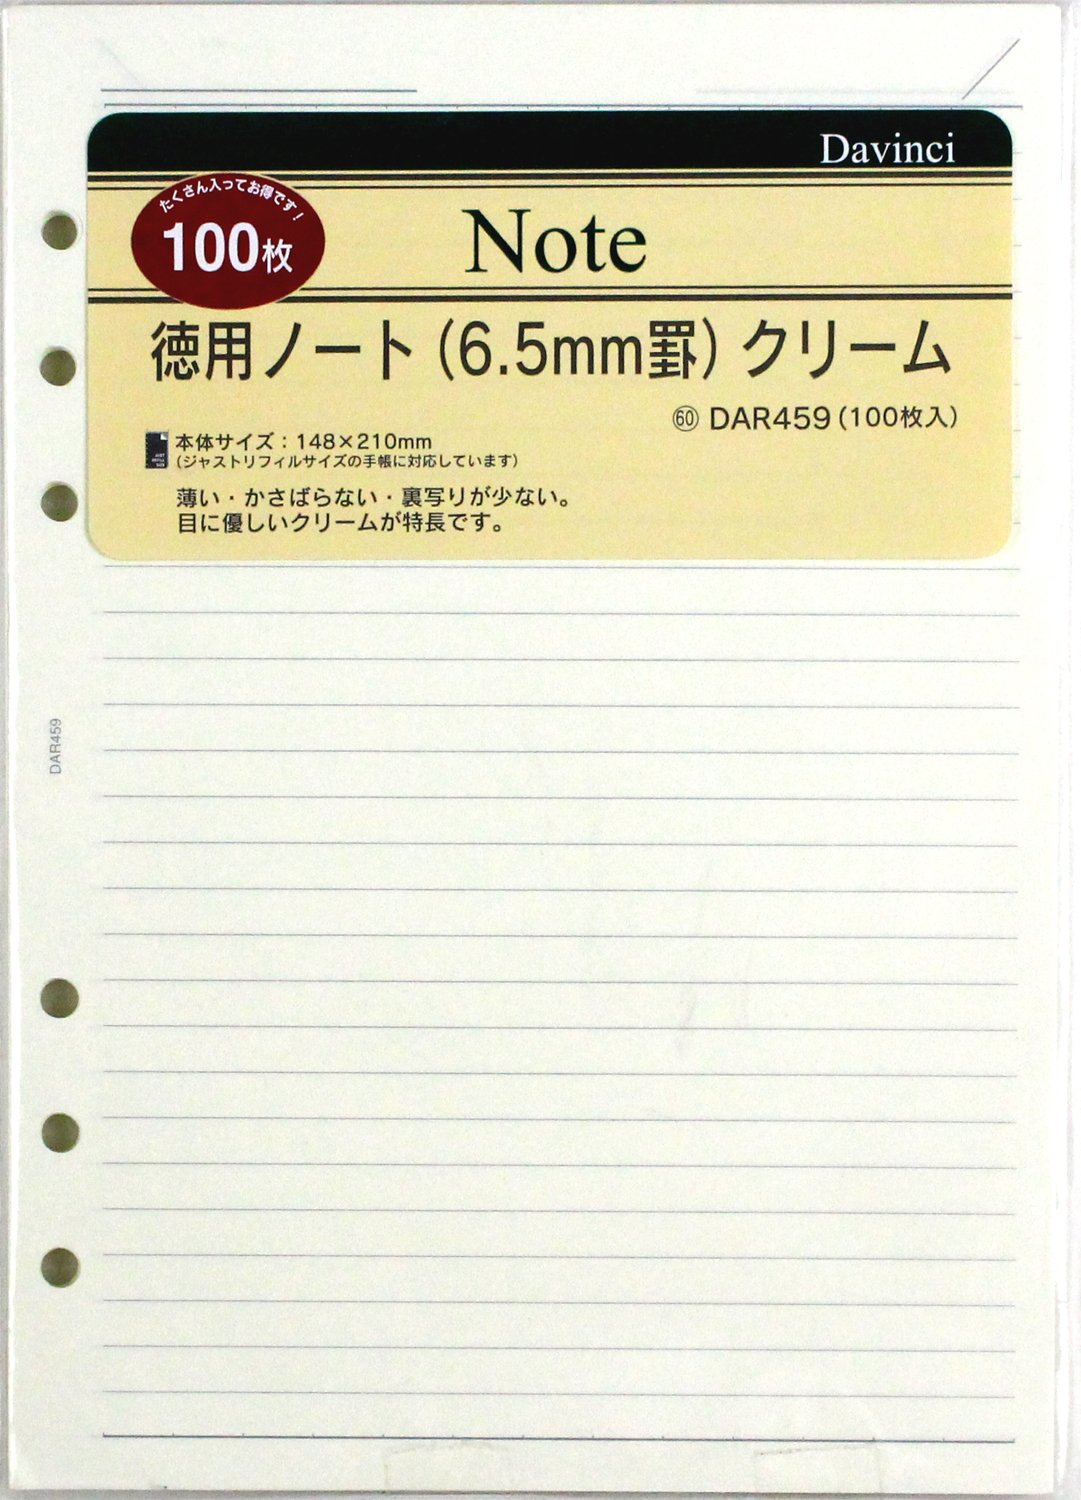 Raymay Davinci A5 size 6-hole personal organizer refill, economical notepad, 6.5mm ruled paper, cream,100 sheets DAR459 by RayMay Reimeifujii